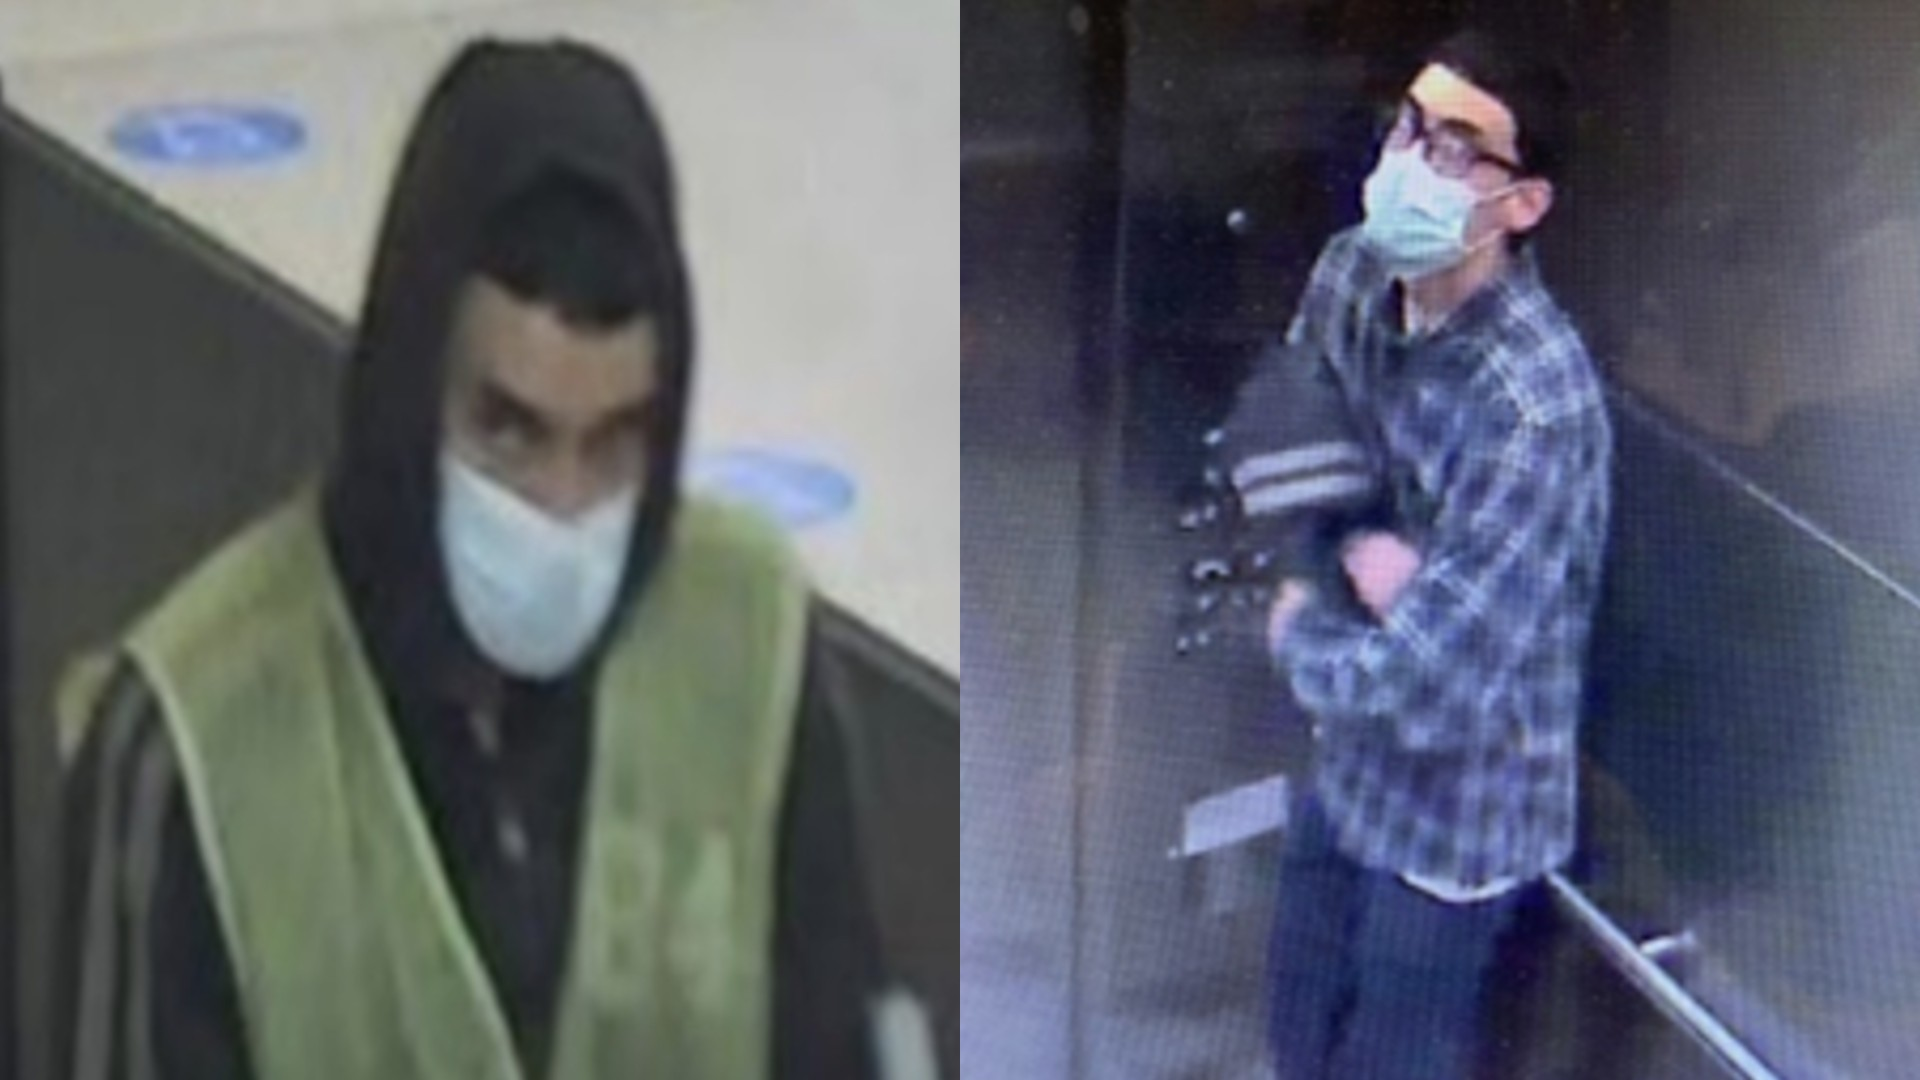 Images released by the Los Angeles Police Department show a man who breached security at LAX.